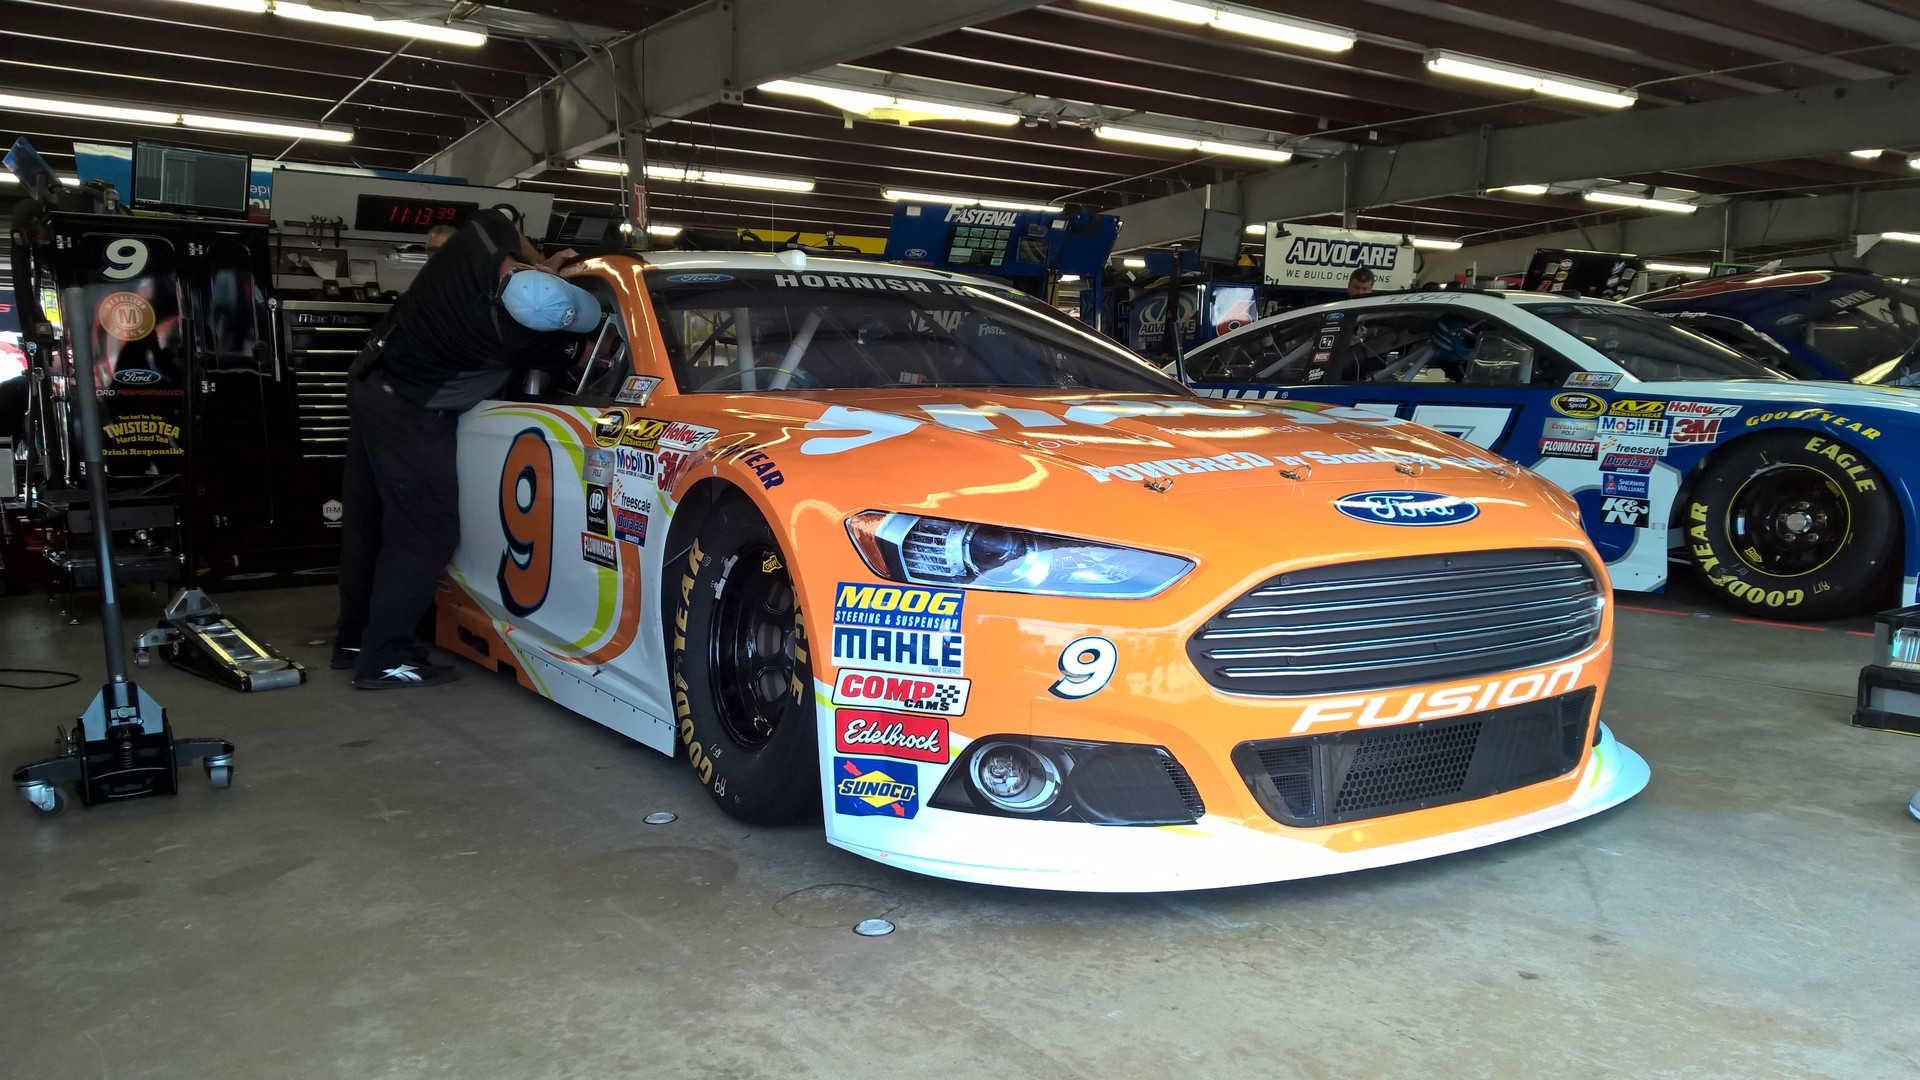 The #9 Shaw's Supermarkets Ford Fusion awaiting a practice session at New Hampshire Motor Speedway on July 17th, 2015.